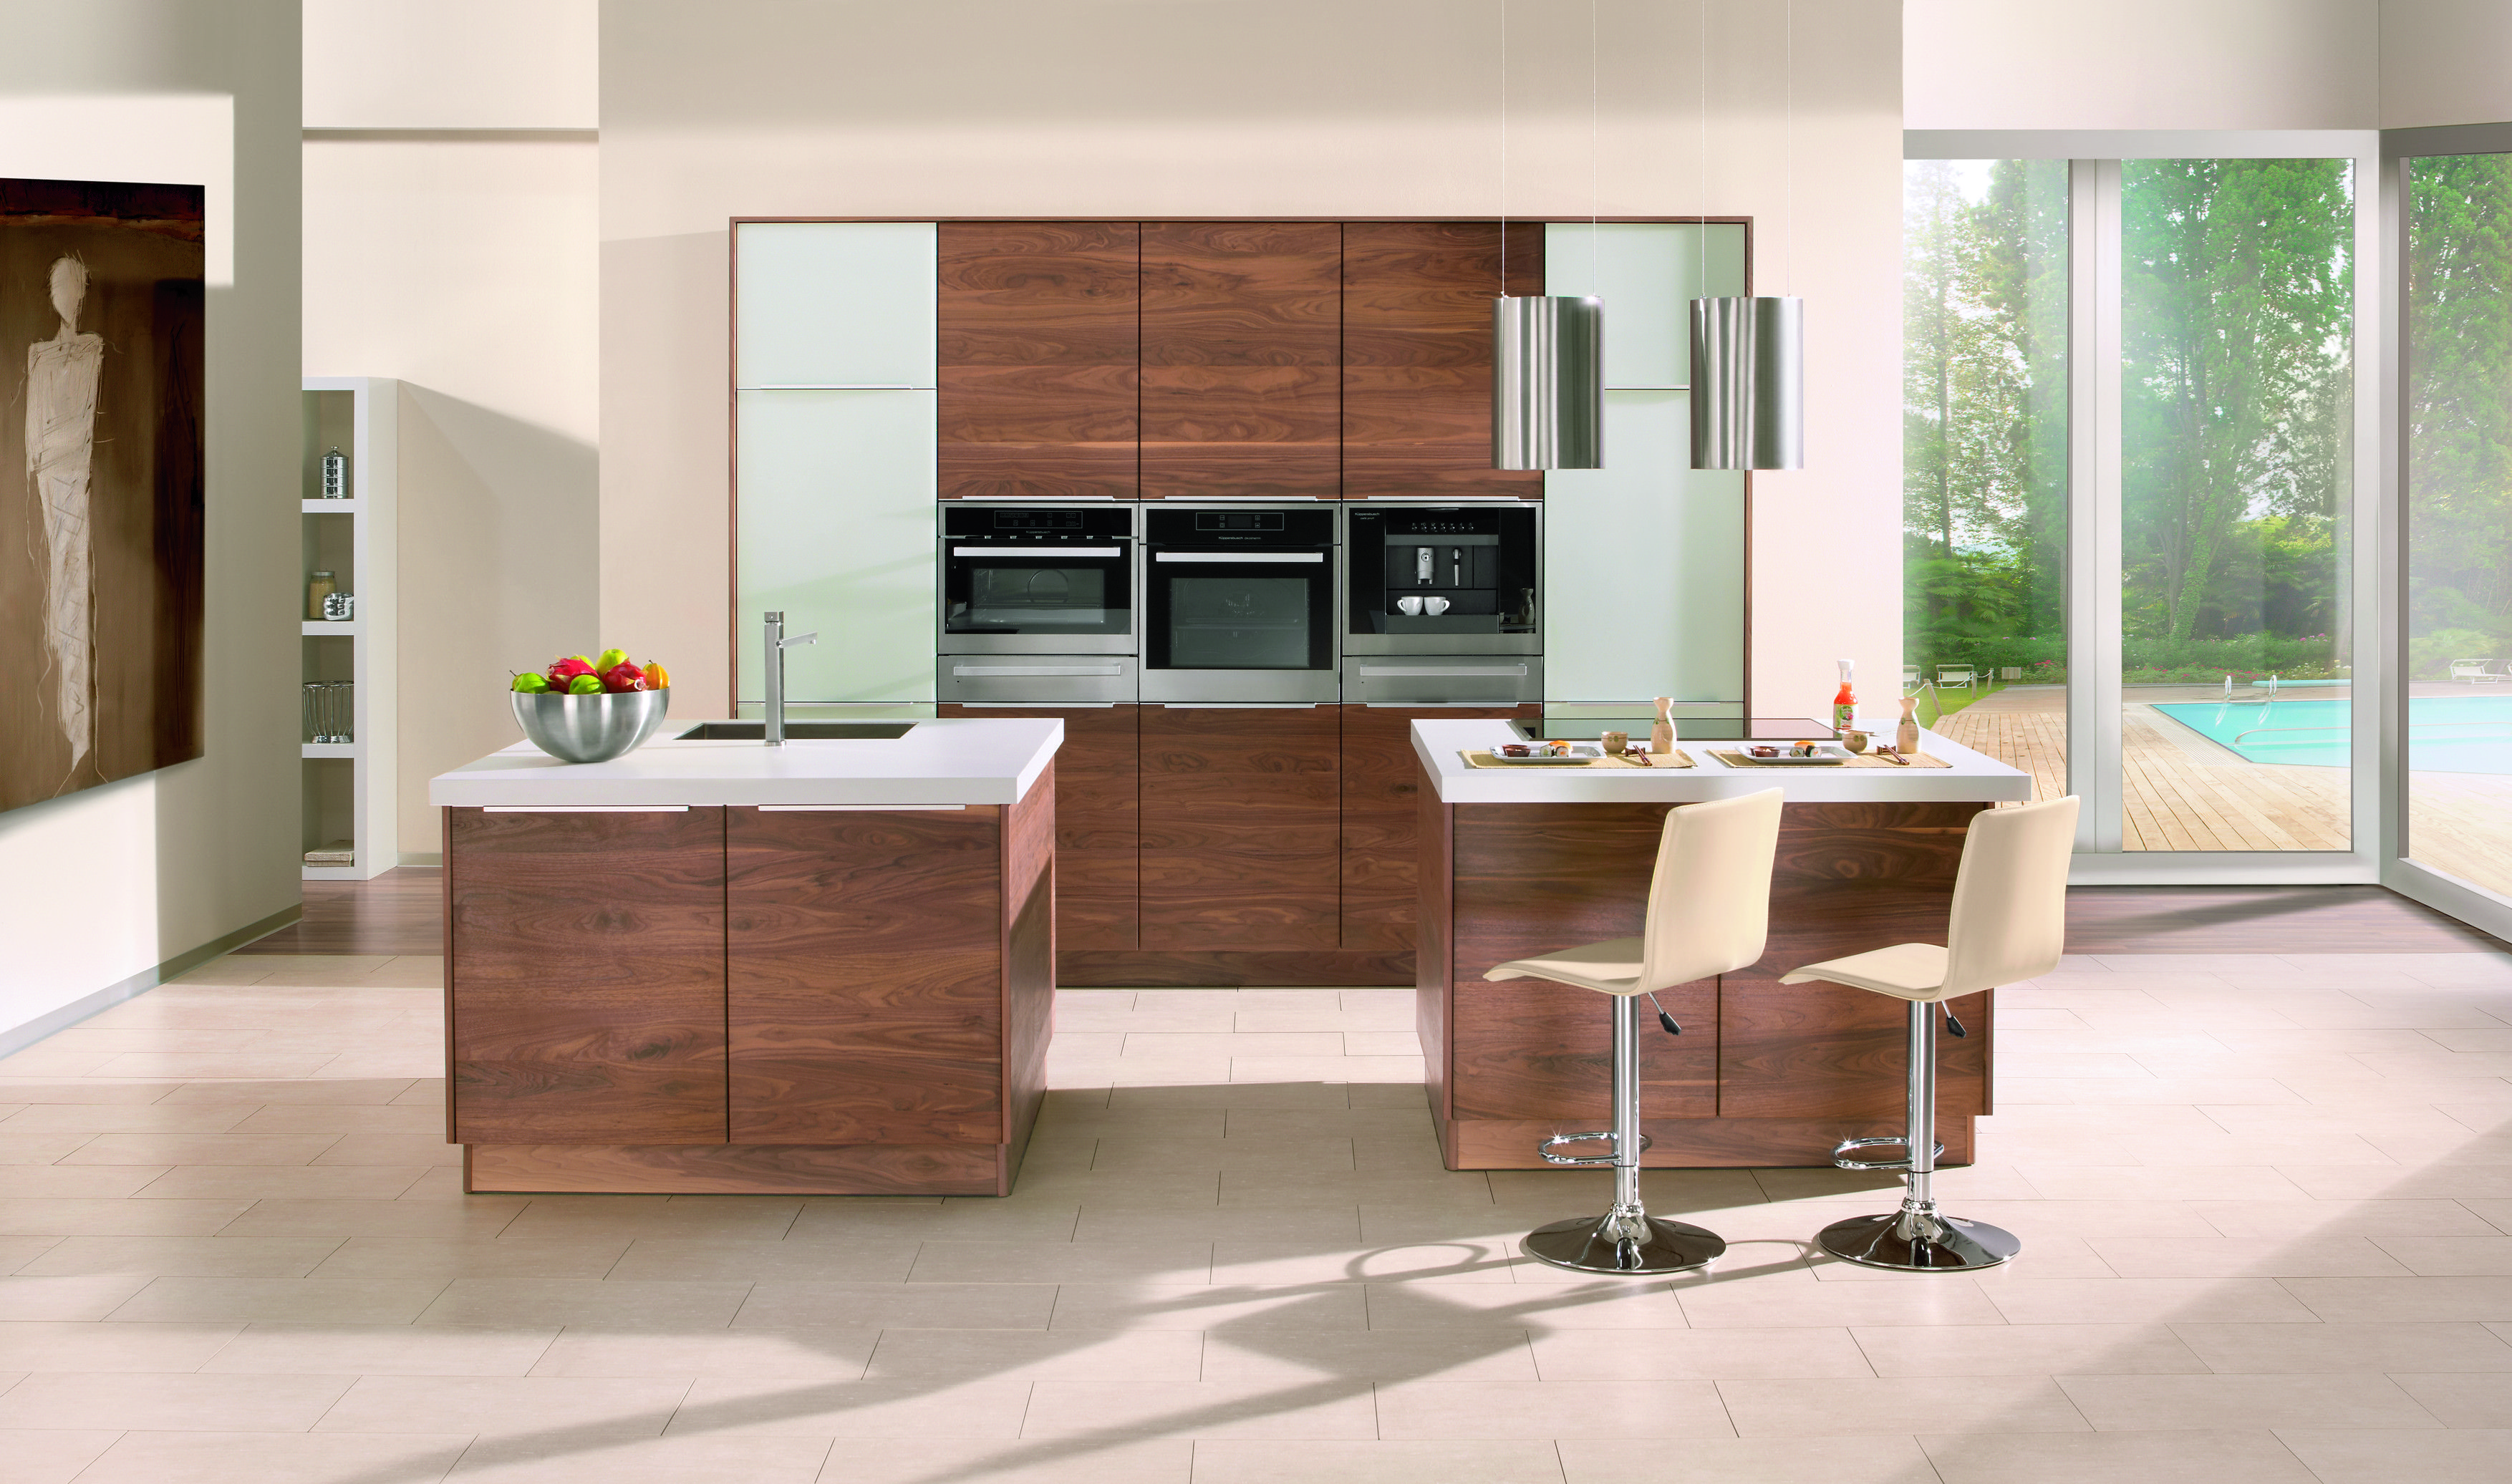 Kuche Nussbaum Oster Mobelkollektion Gmbh Exclusive Kitchens